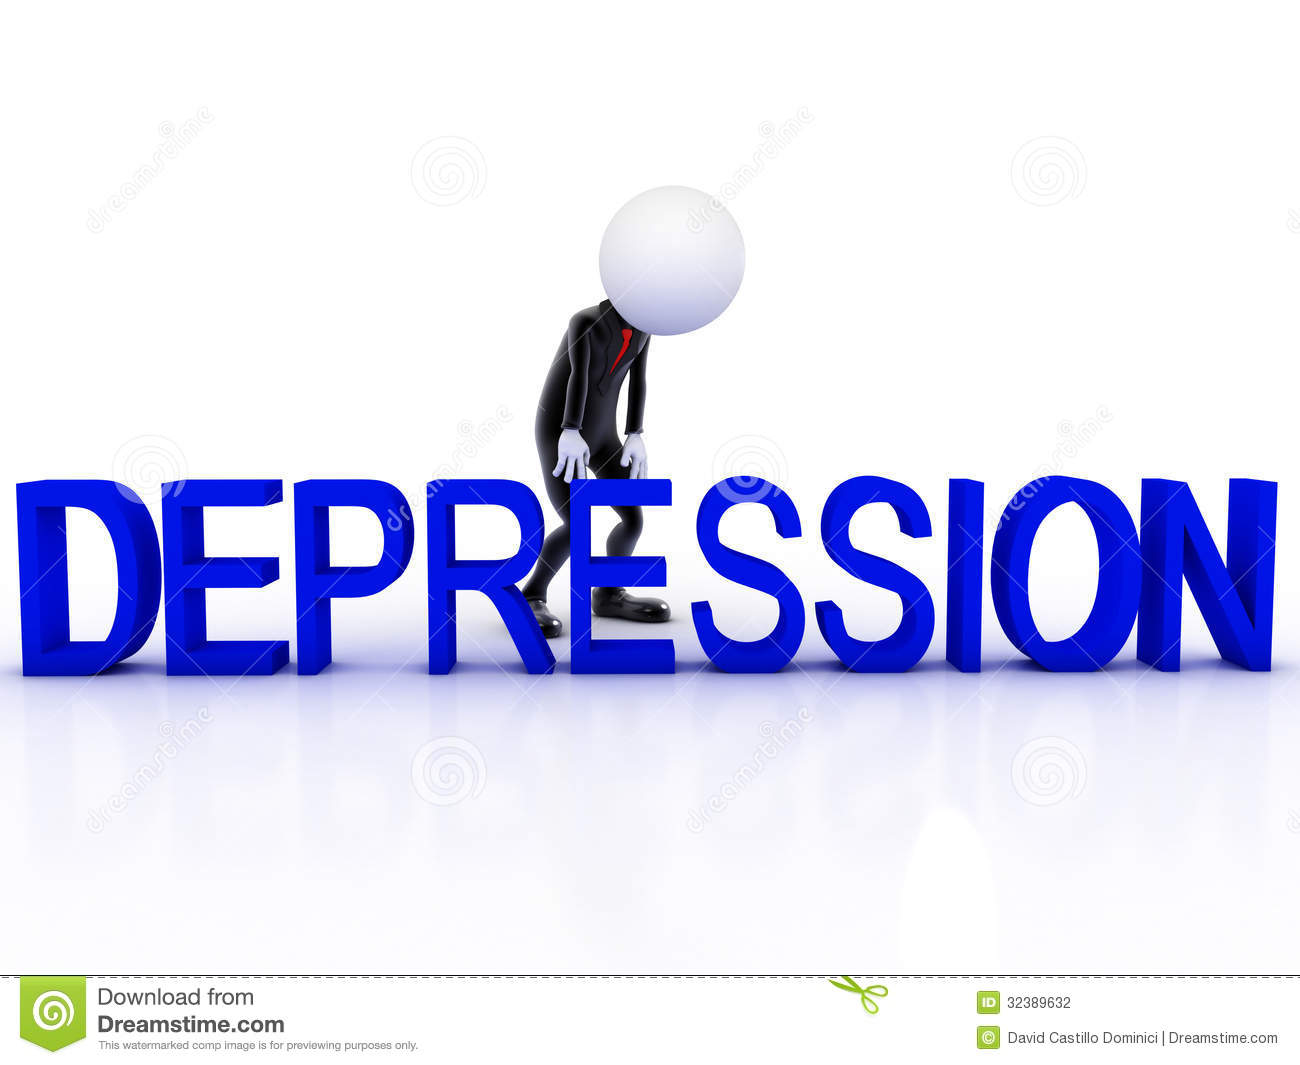 free clipart images depression - photo #21